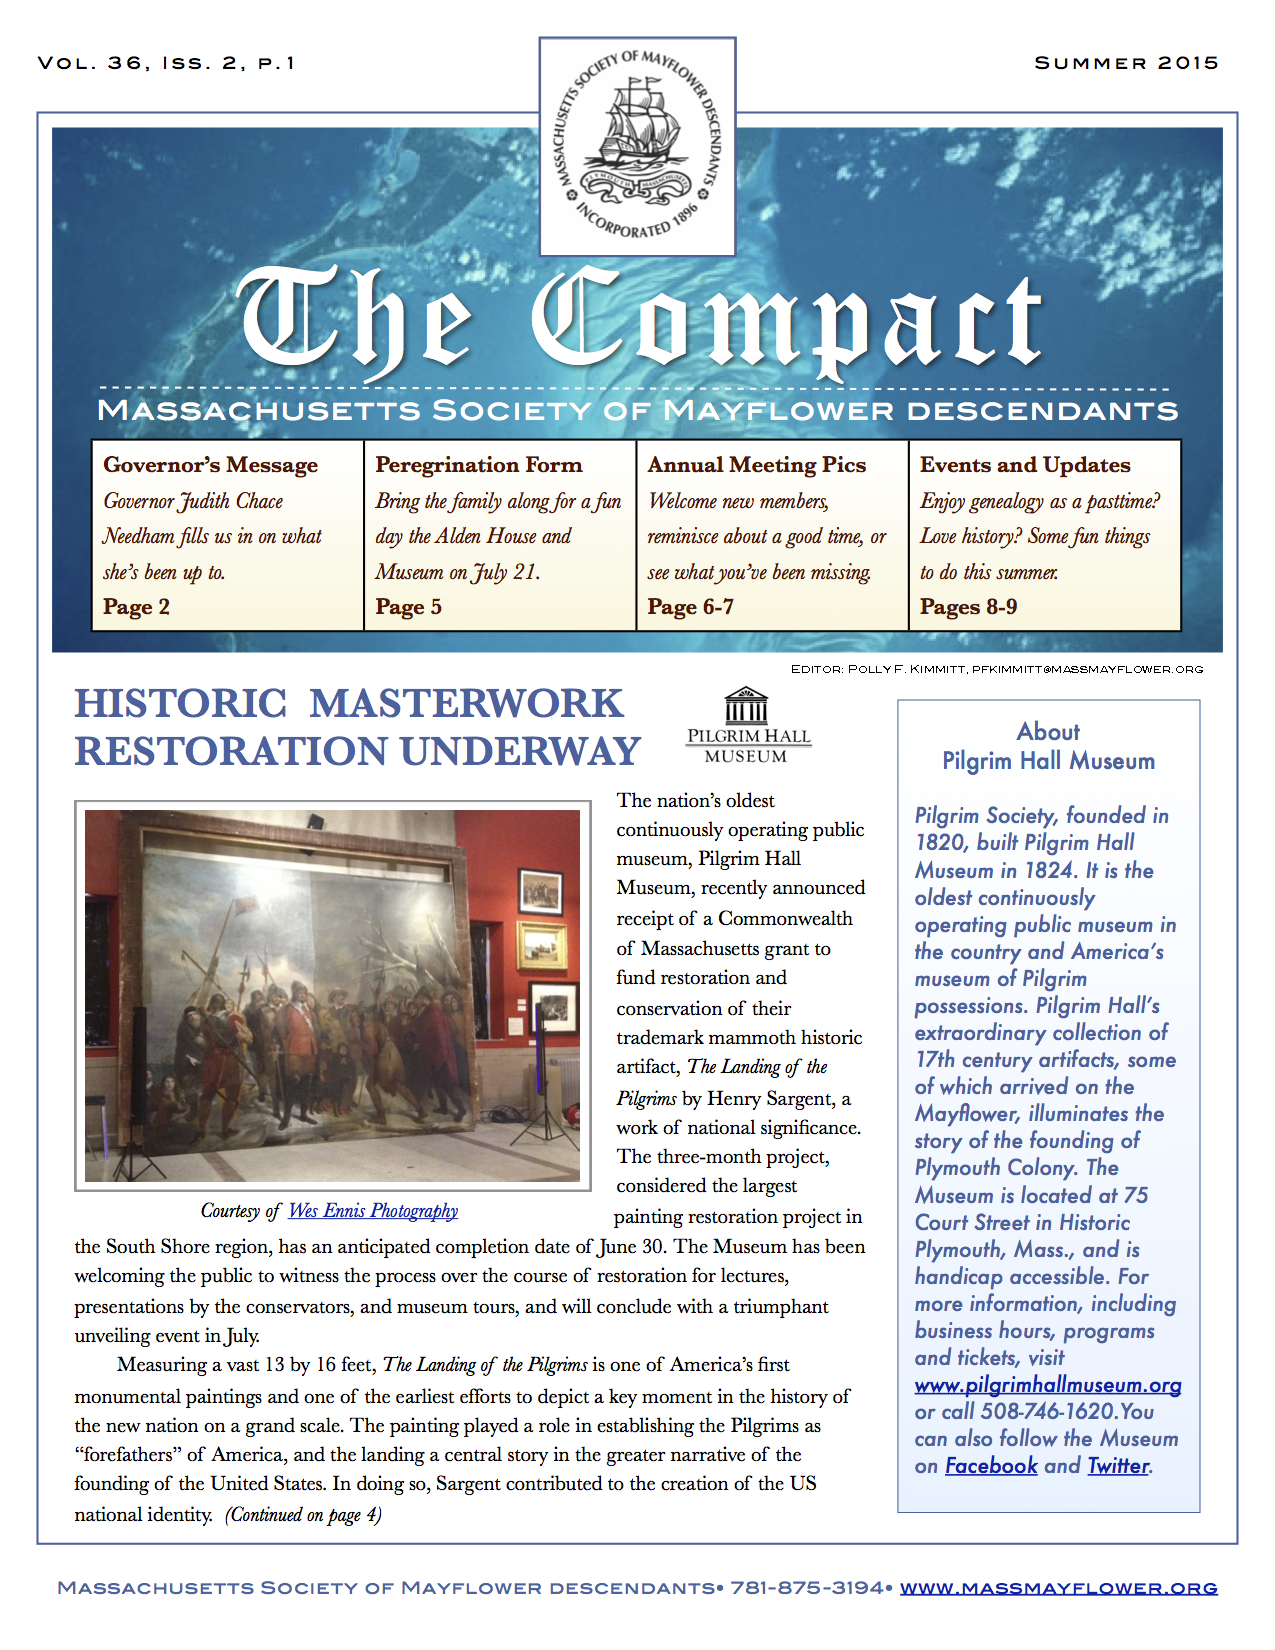 Cover Final Mayflower Compact vol. 36 Issue 2 Summer 2015